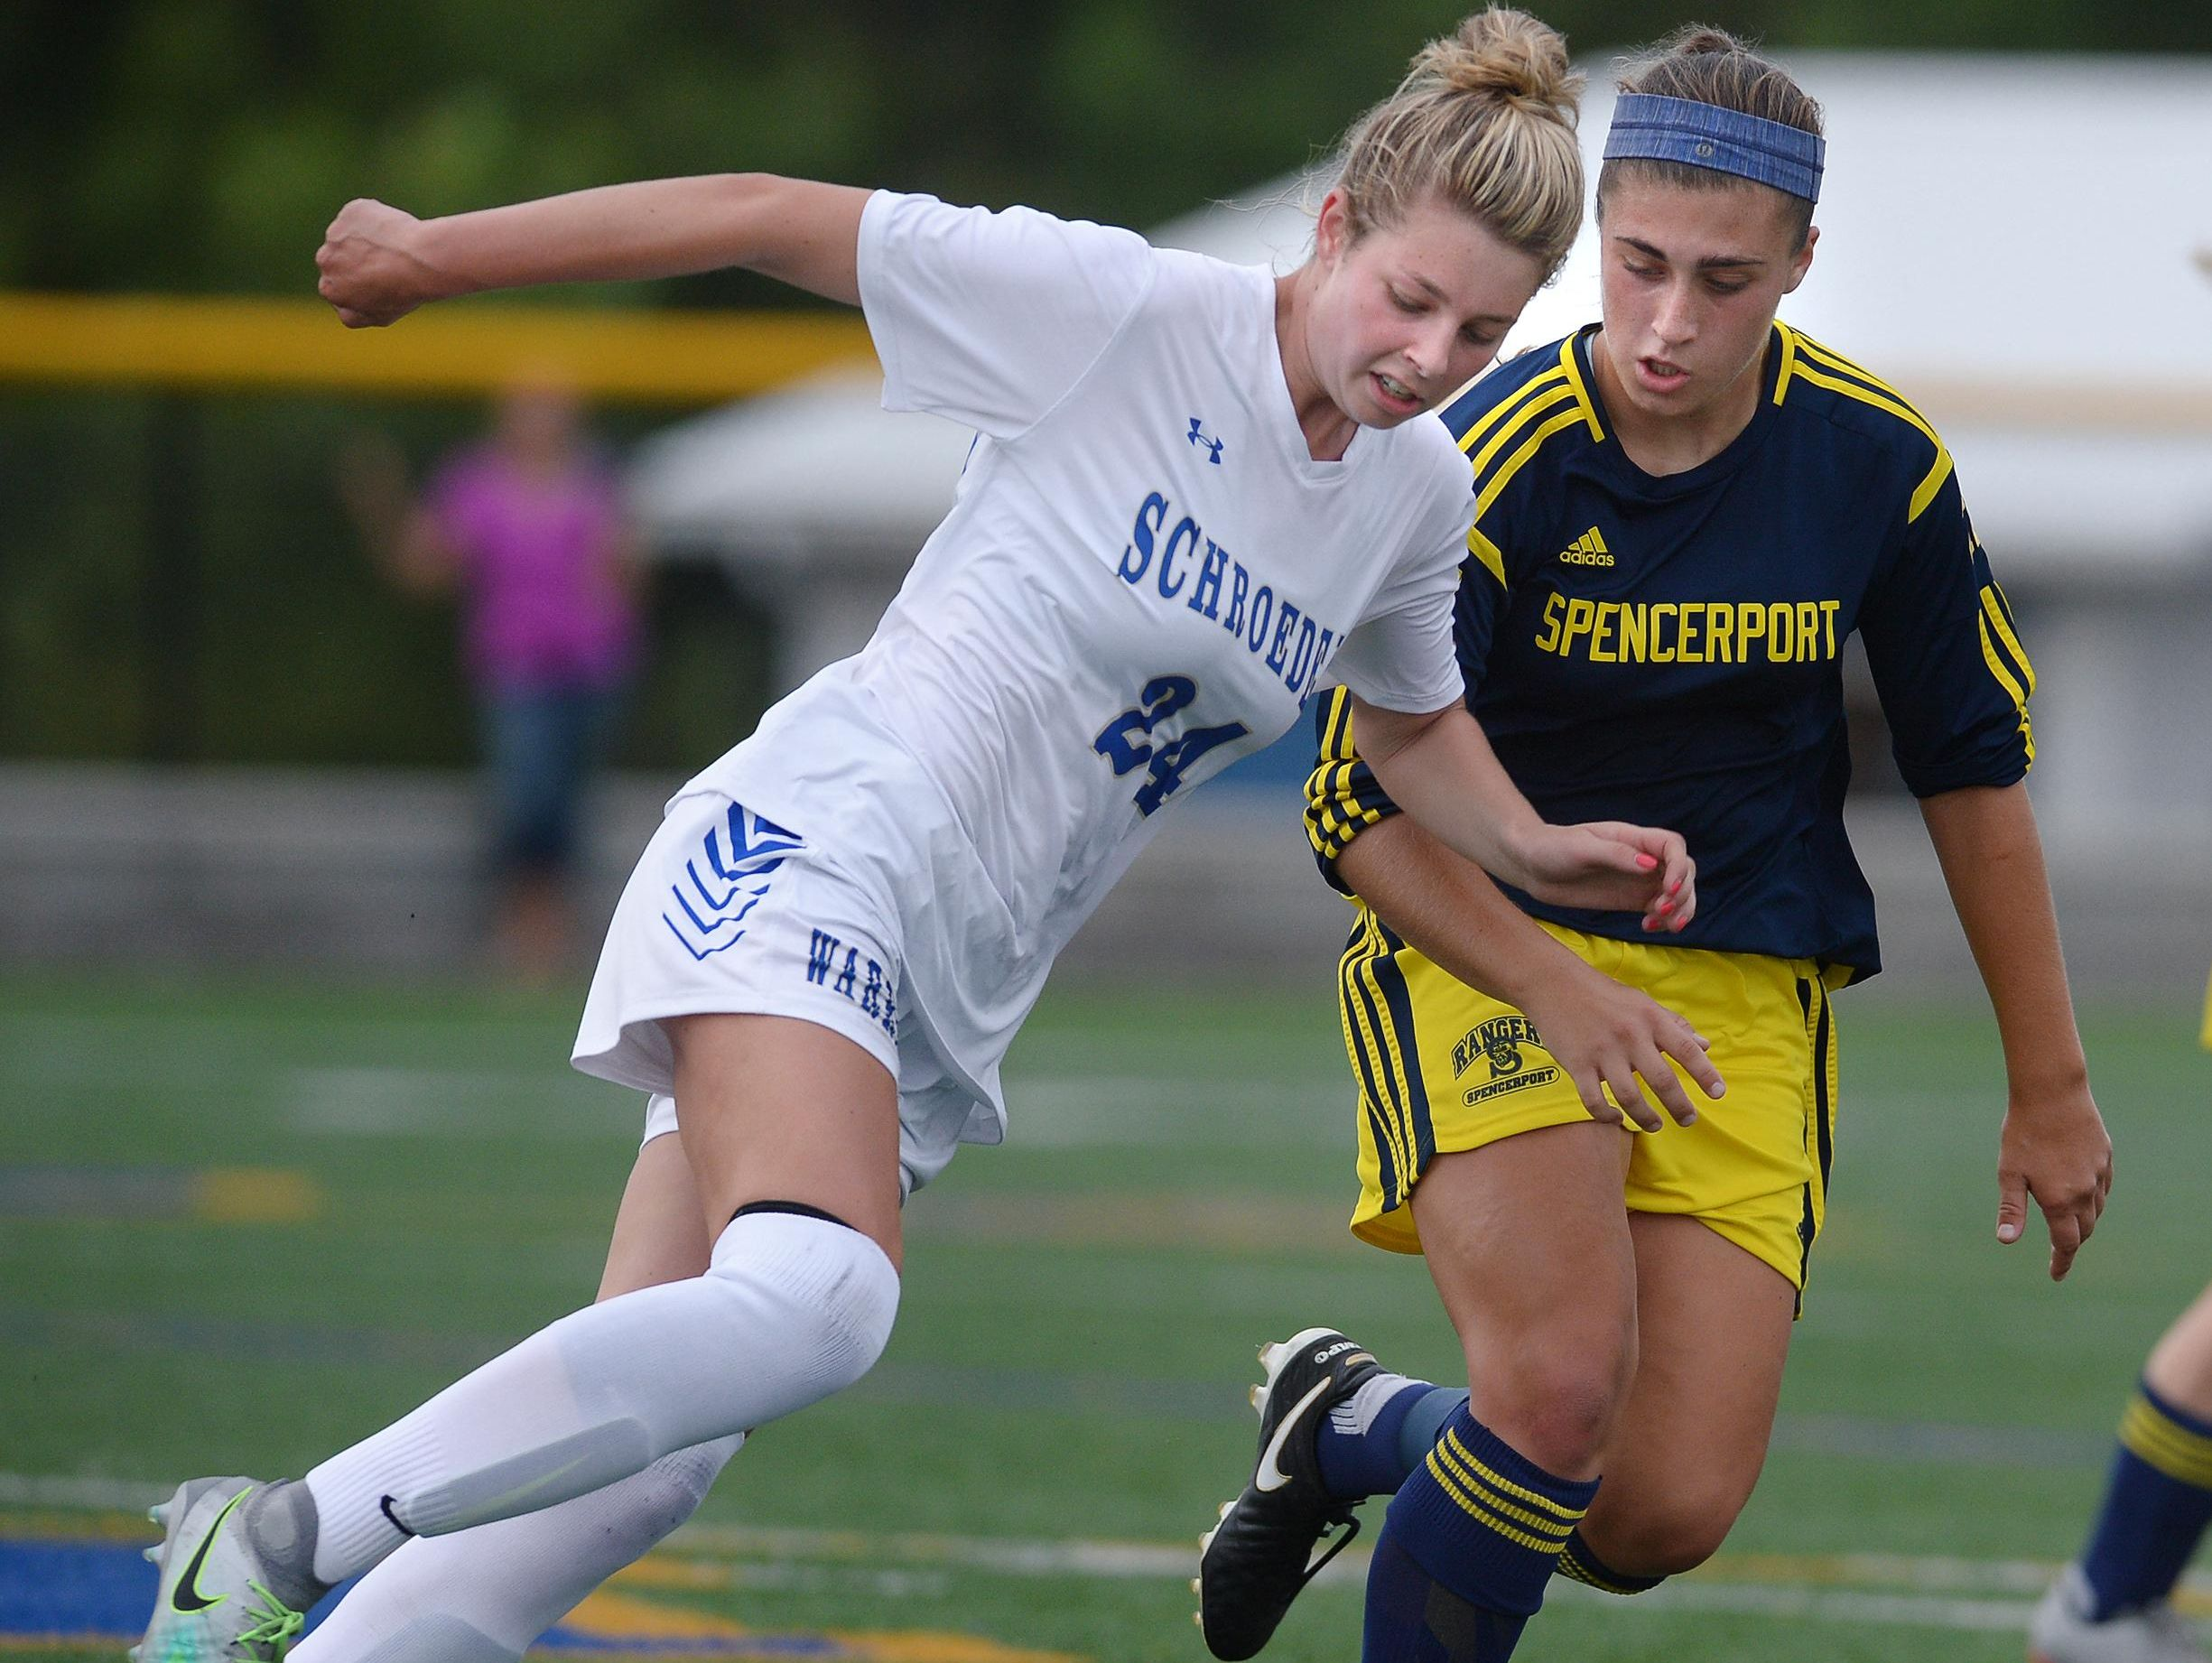 Webster Schroeder's Maddy Lowe, left, is defended by Spencerport's Olivia Wall during a regular season game at Webster Schroeder High School on Saturday, Sept. 17, 2016. Webster Schroeder and Spencerport played to a 1-1 draw.